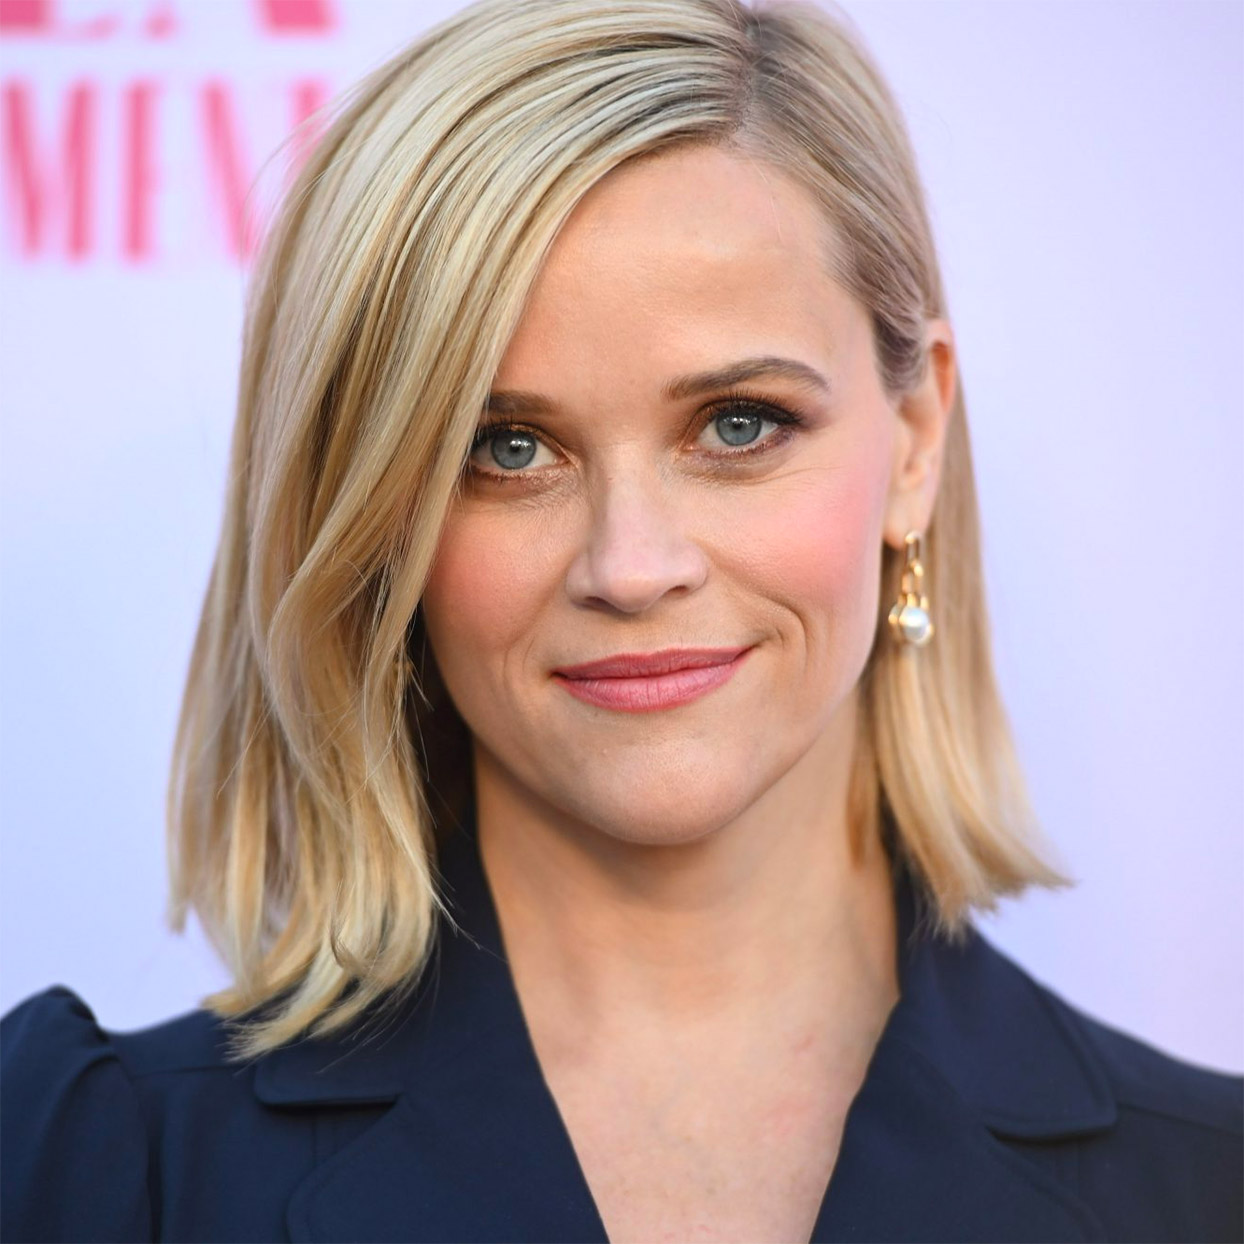 Reese Witherspoon Drinks this Green Smoothie Every Day—Here's How to Make it